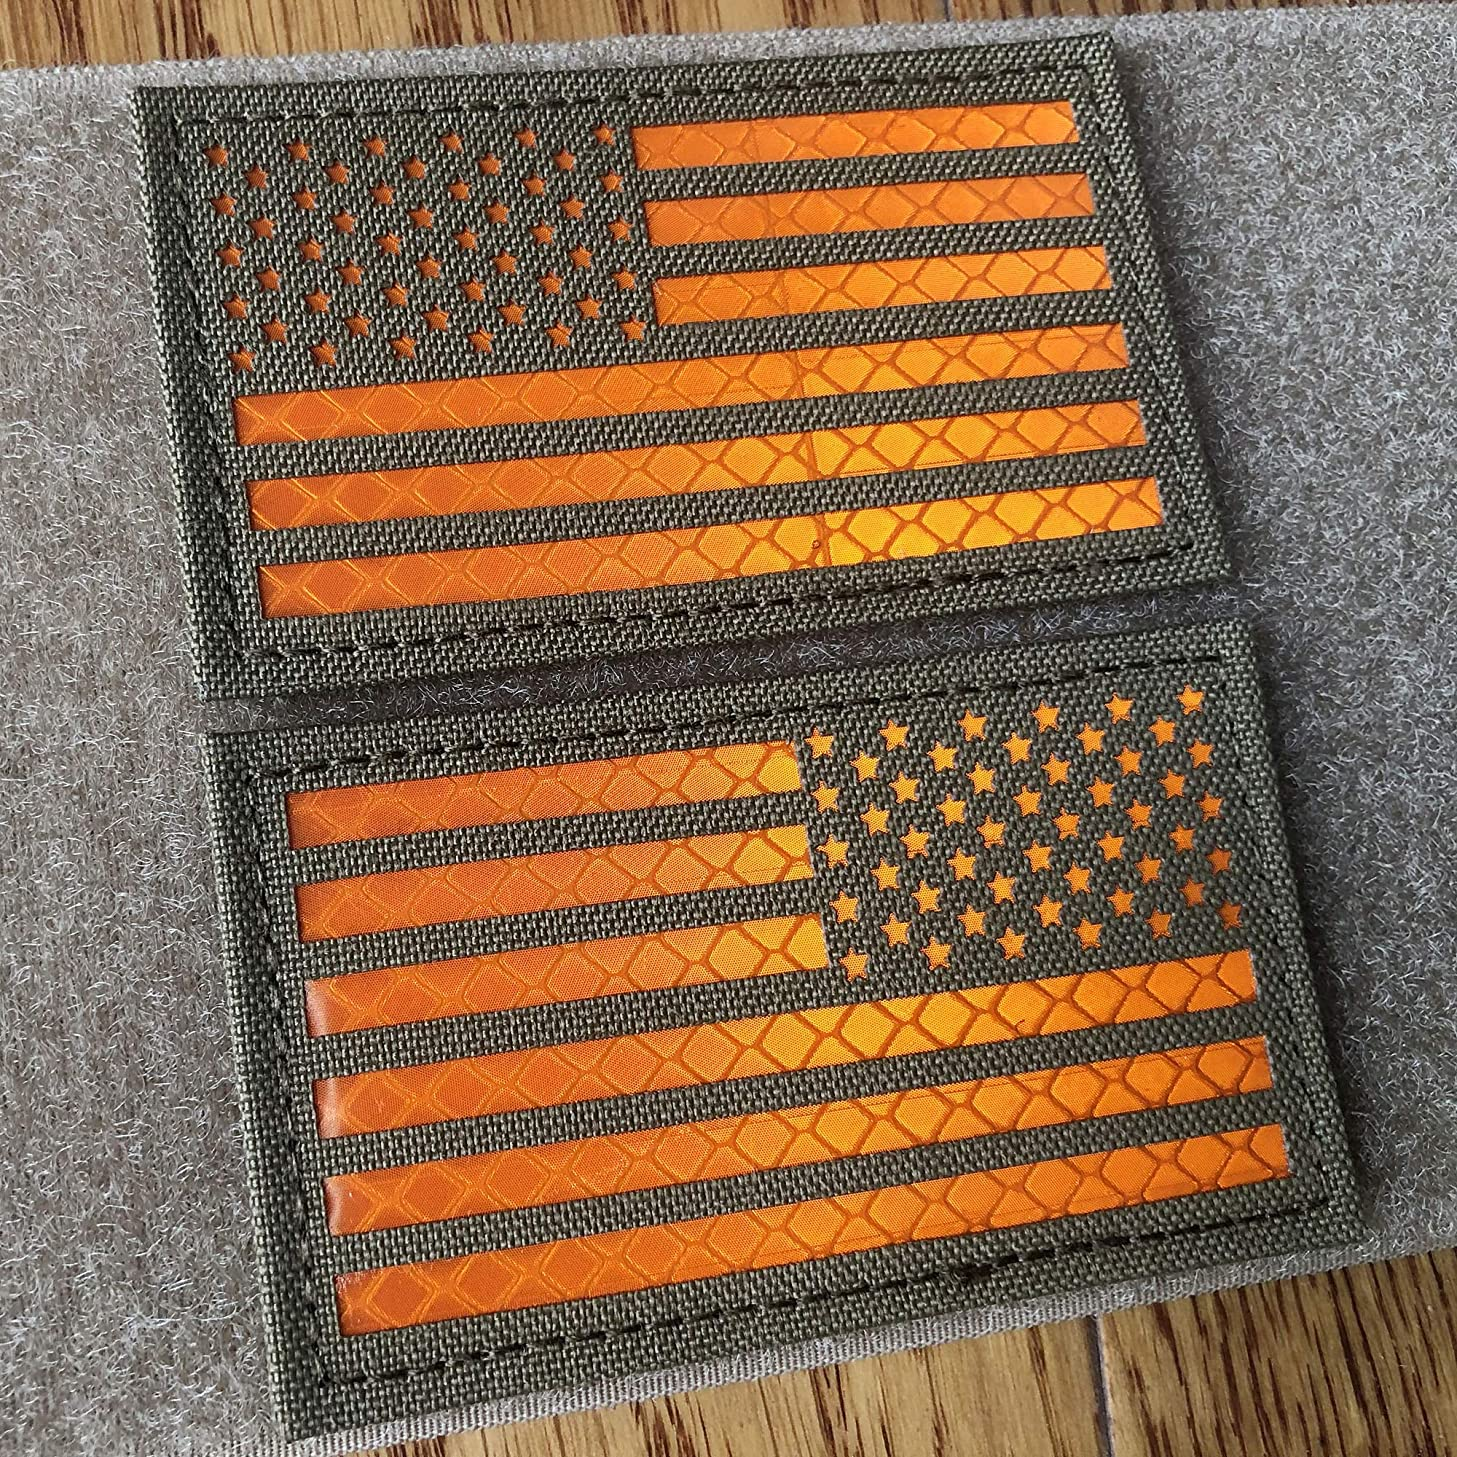 2x3.5 Inch Coyote Brown Tan Reflective US USA American Flag Patch Tactical Vest Patch Hook-Fastener Backing (Orange) (Forward and Reversed)